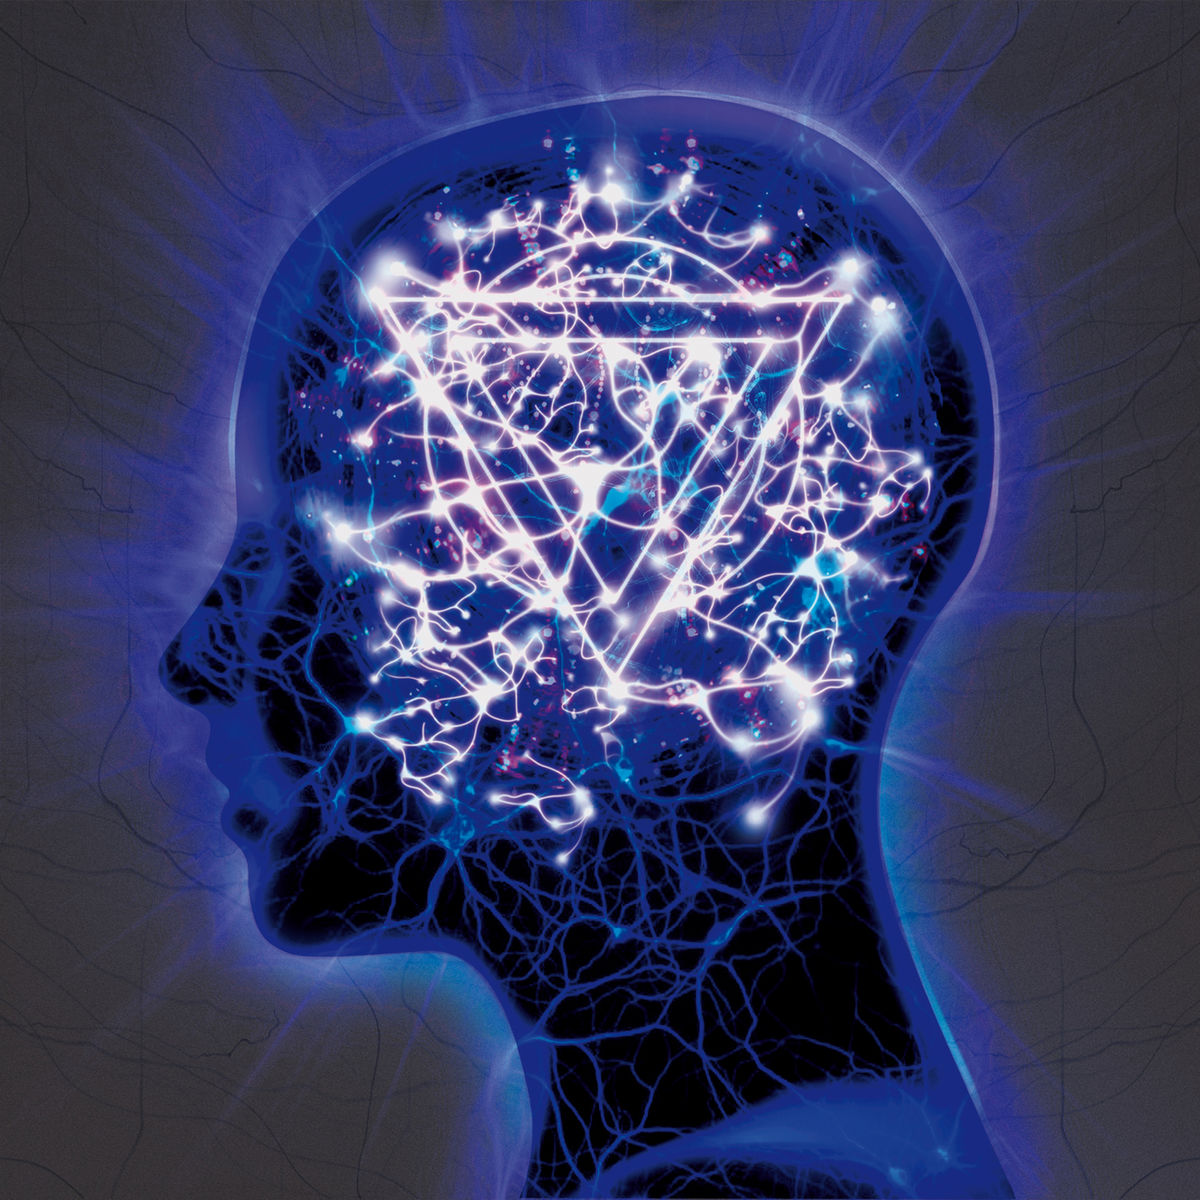 Enter Shikari - The Mindsweep (2015)